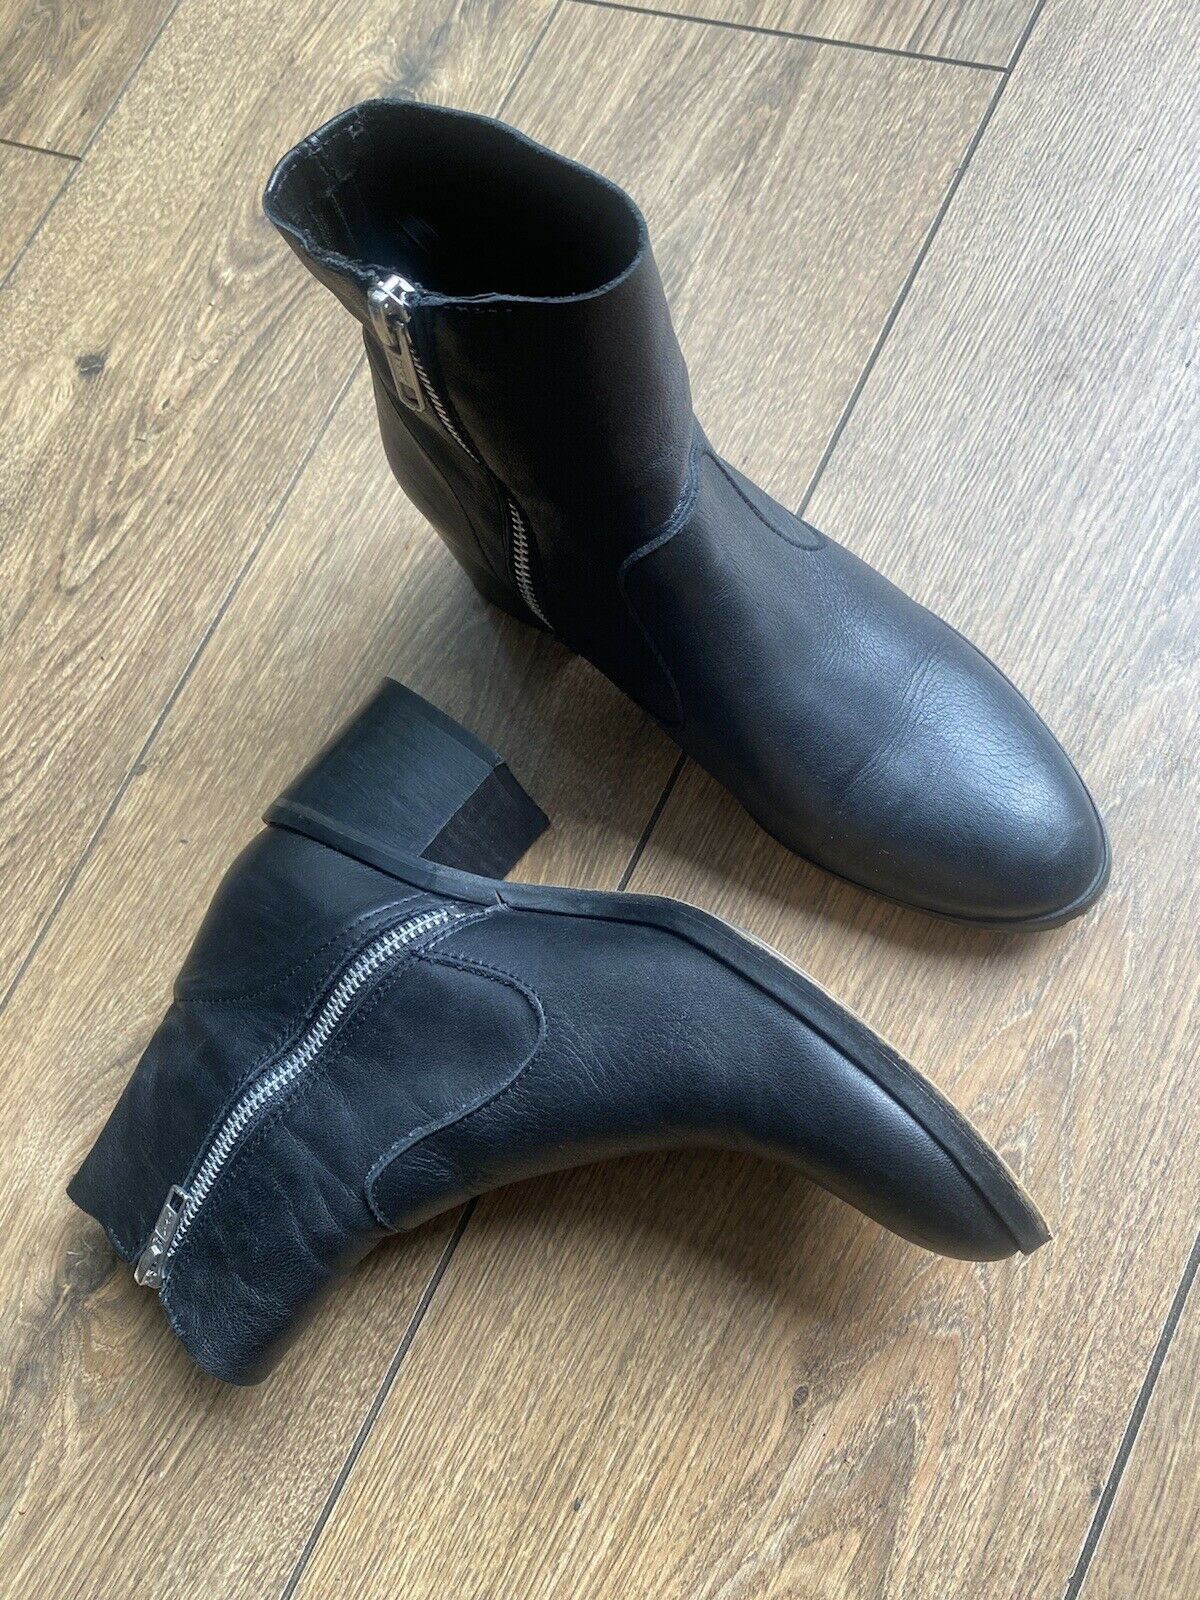 Vgc Topshop Black Leather Silver Zip Chelsea Ankle Boots 5 38